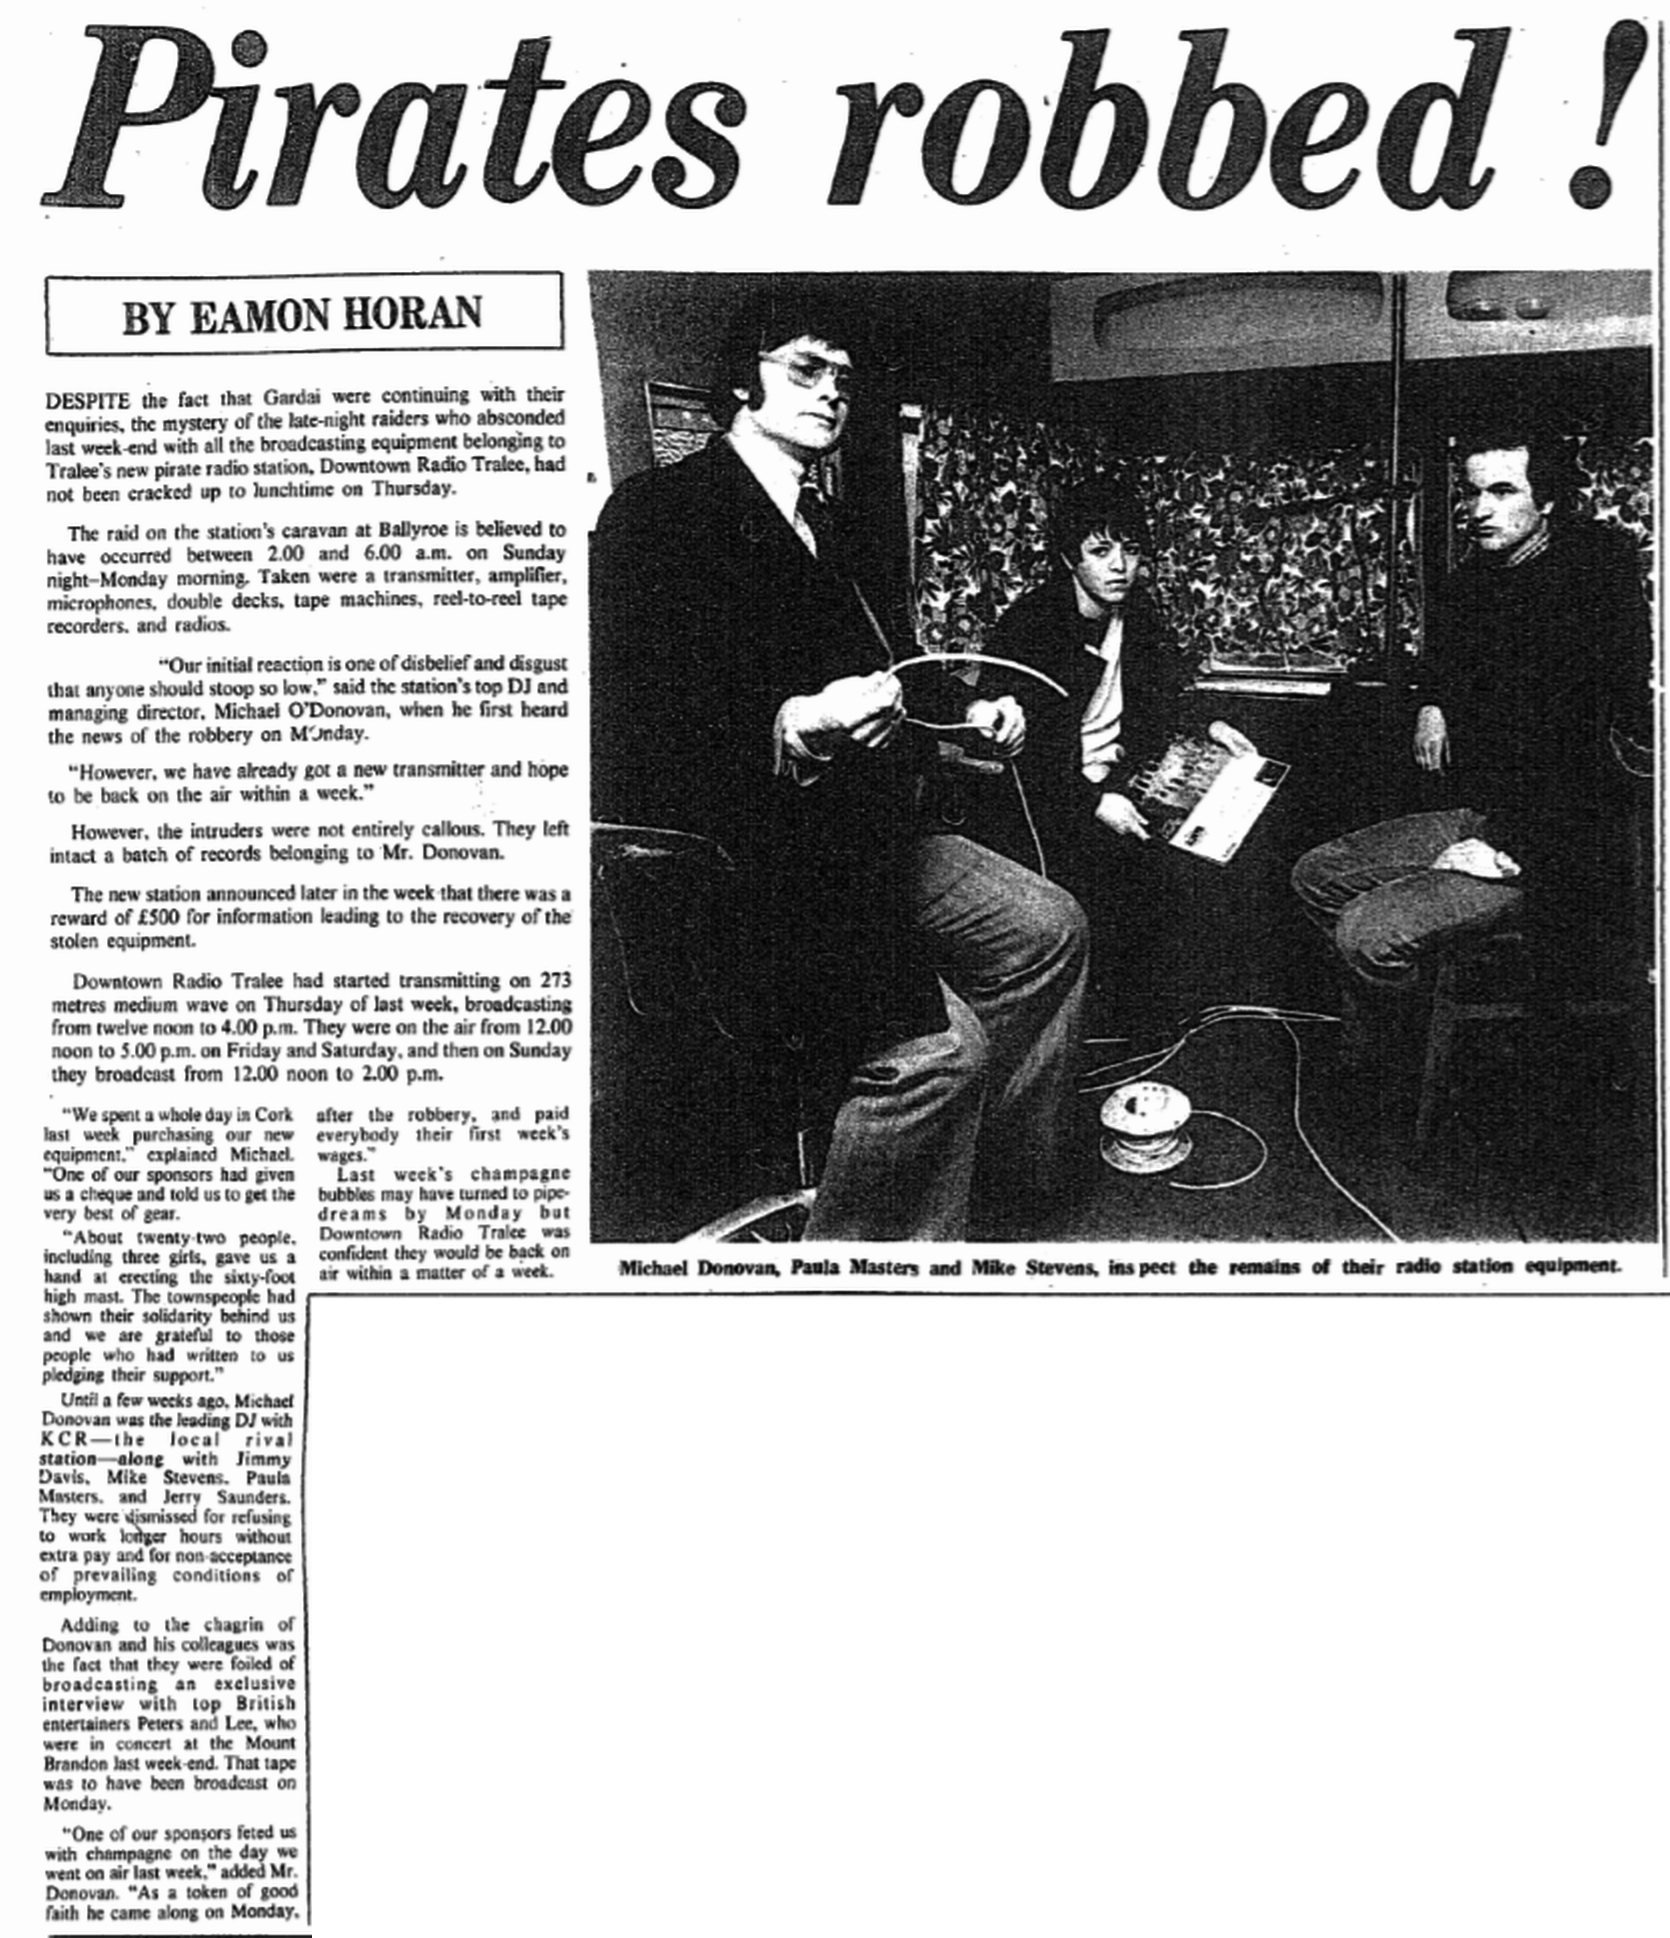 Pirates robbed! was a headline in The Kerryman dated March 2nd 1979